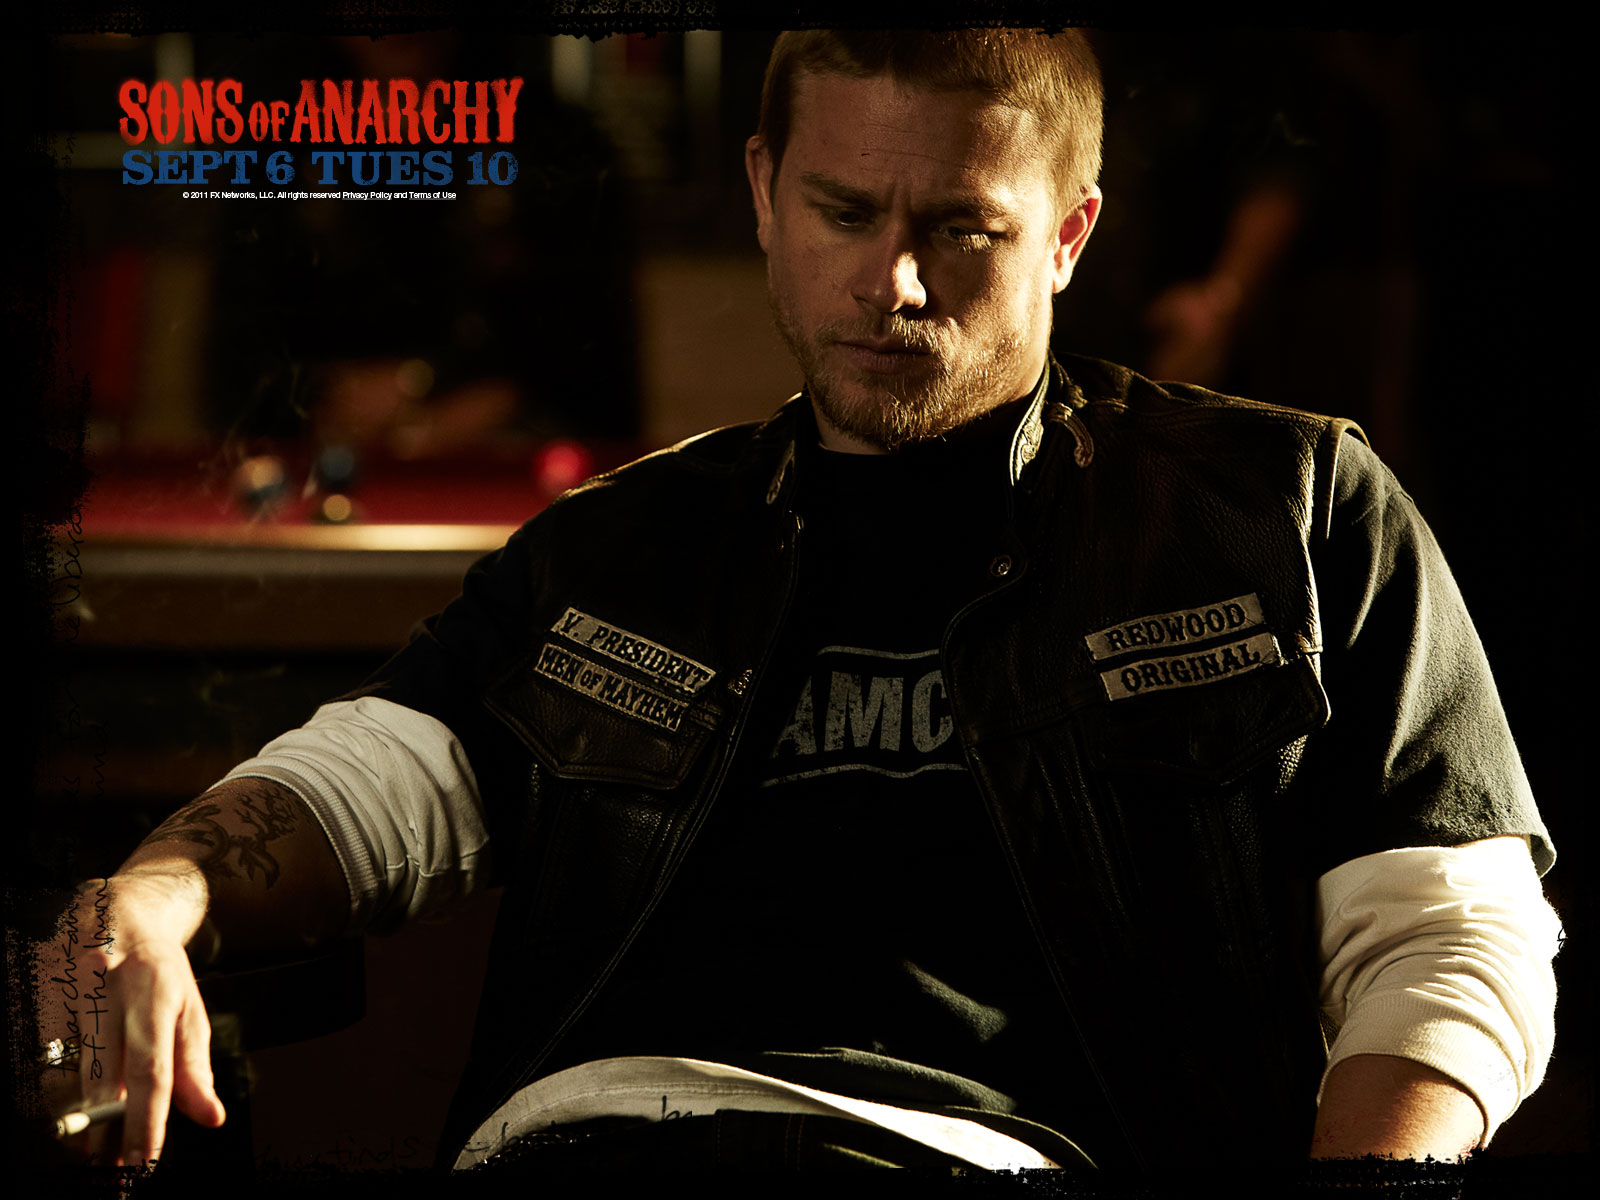 Free Download Jax Teller Sons Of Anarchy Wallpaper 25134473